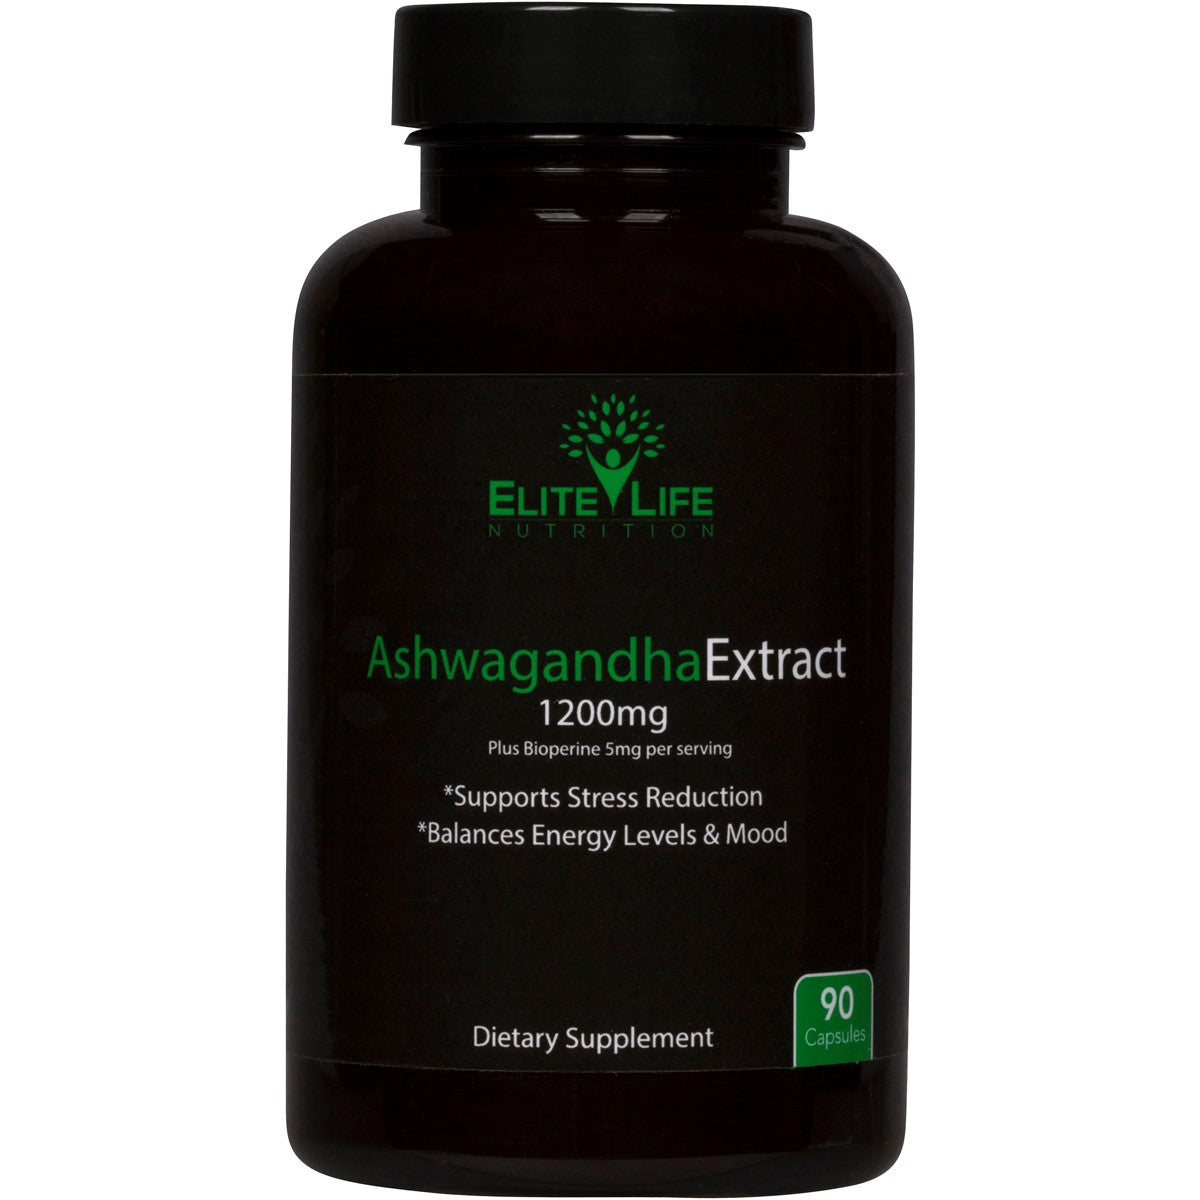 Pure Ashwagandha Extract 1200mg - With Bioperine 5mg